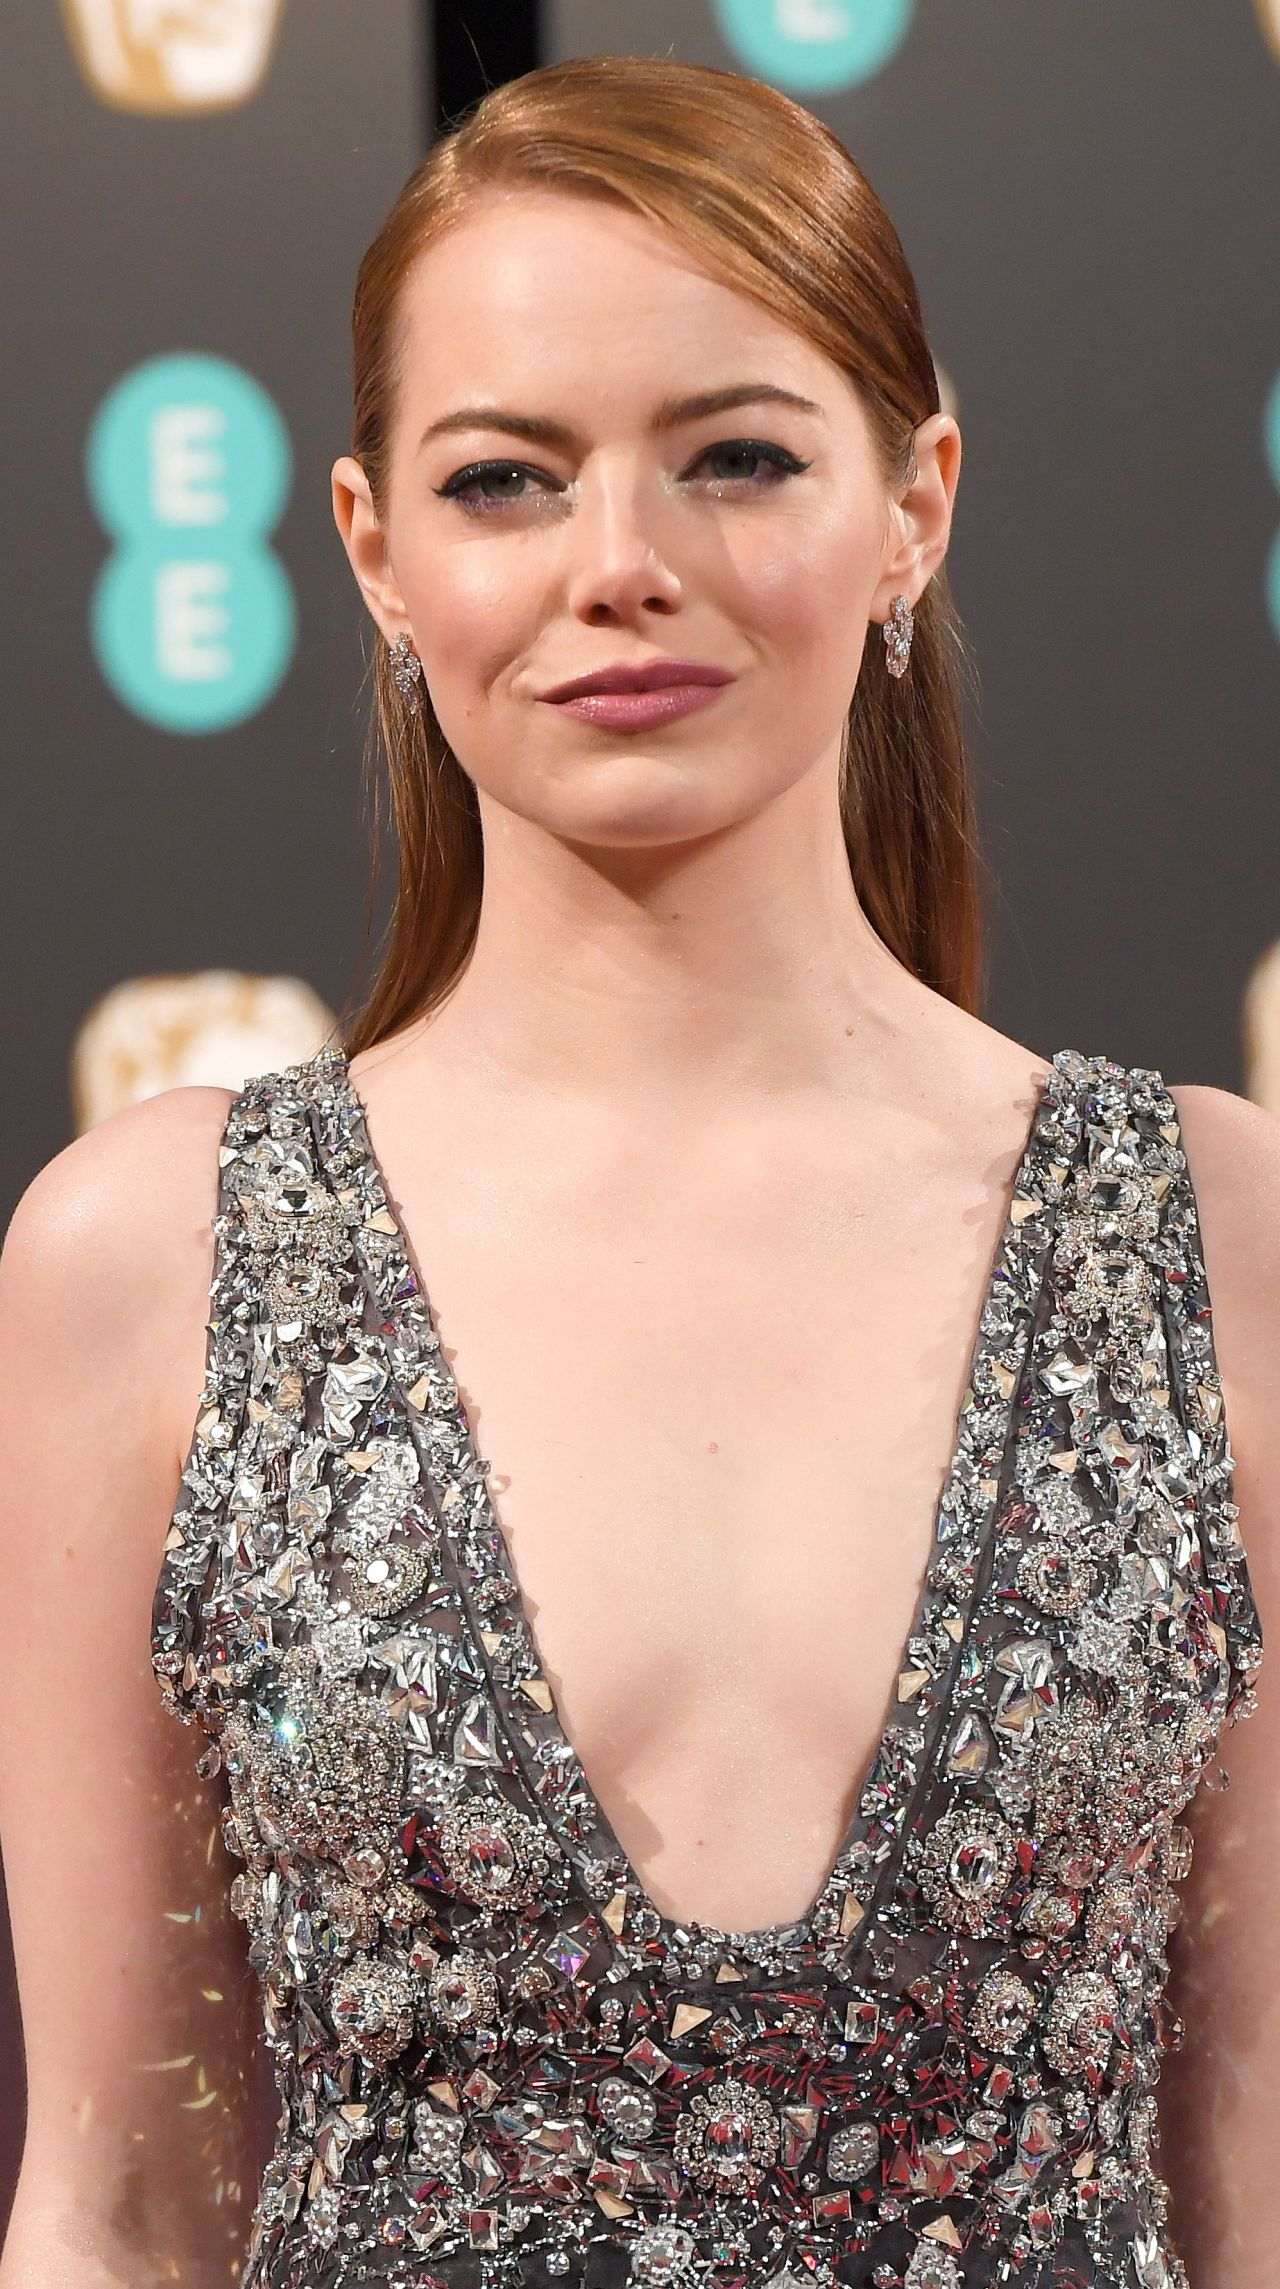 Emma Stone on Red Carpet at BAFTA Awards in London, UK 2 ... Emma Stone